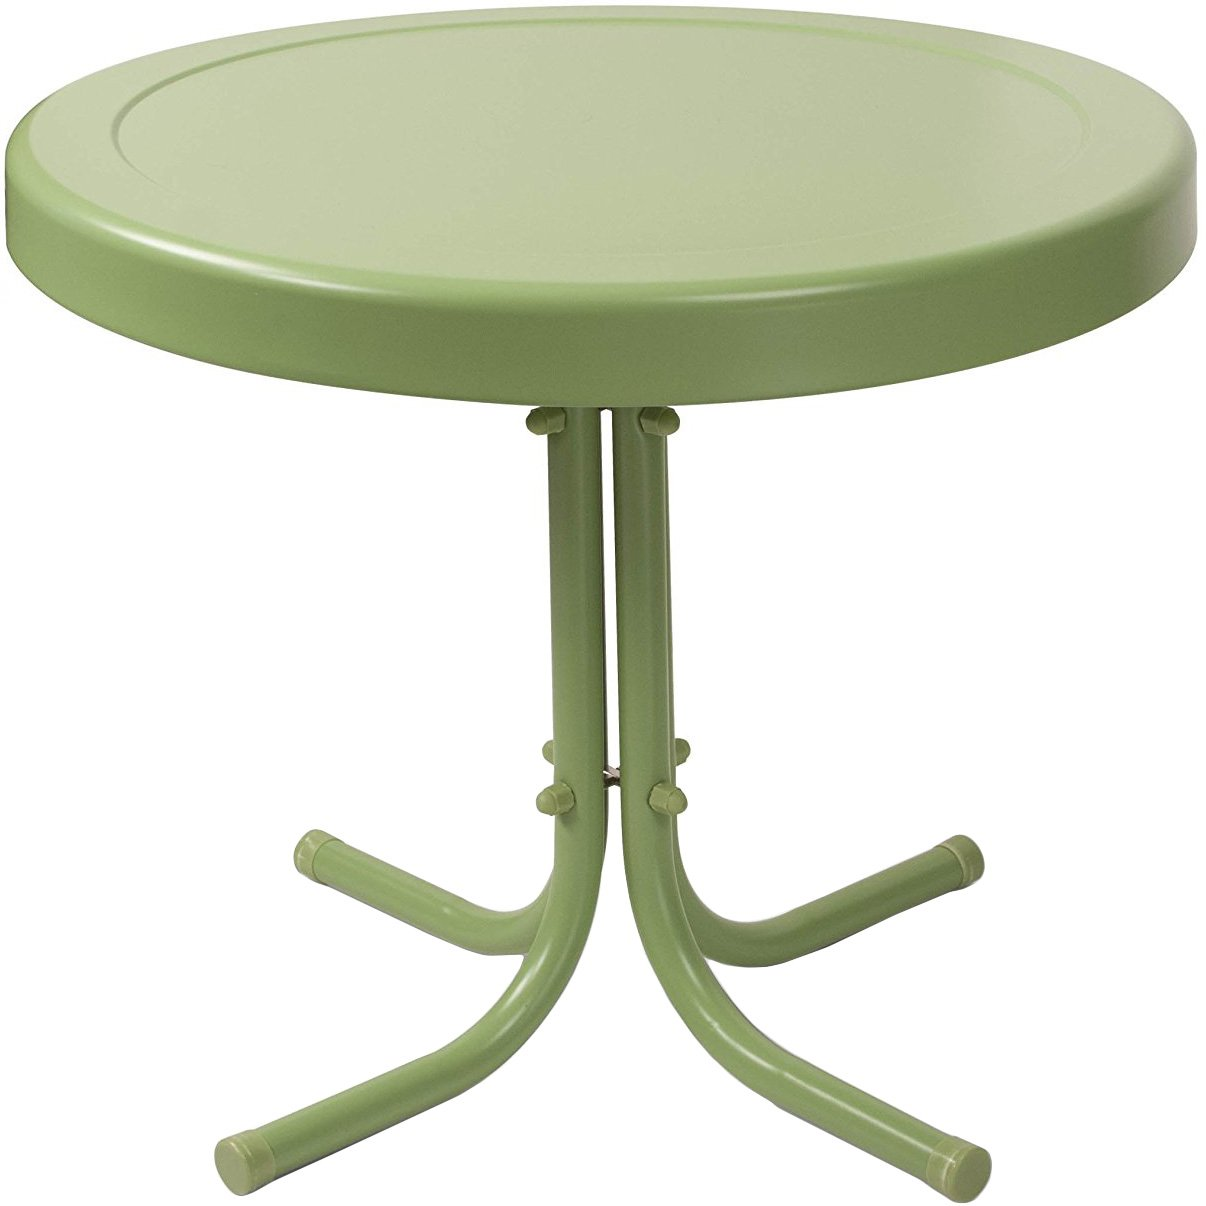 crosley furniture gracie retro inch metal outdoor side table plastic oasis green kitchen dining wrought iron patio accent cherry round glass brass coffee aluminum legs rain drum